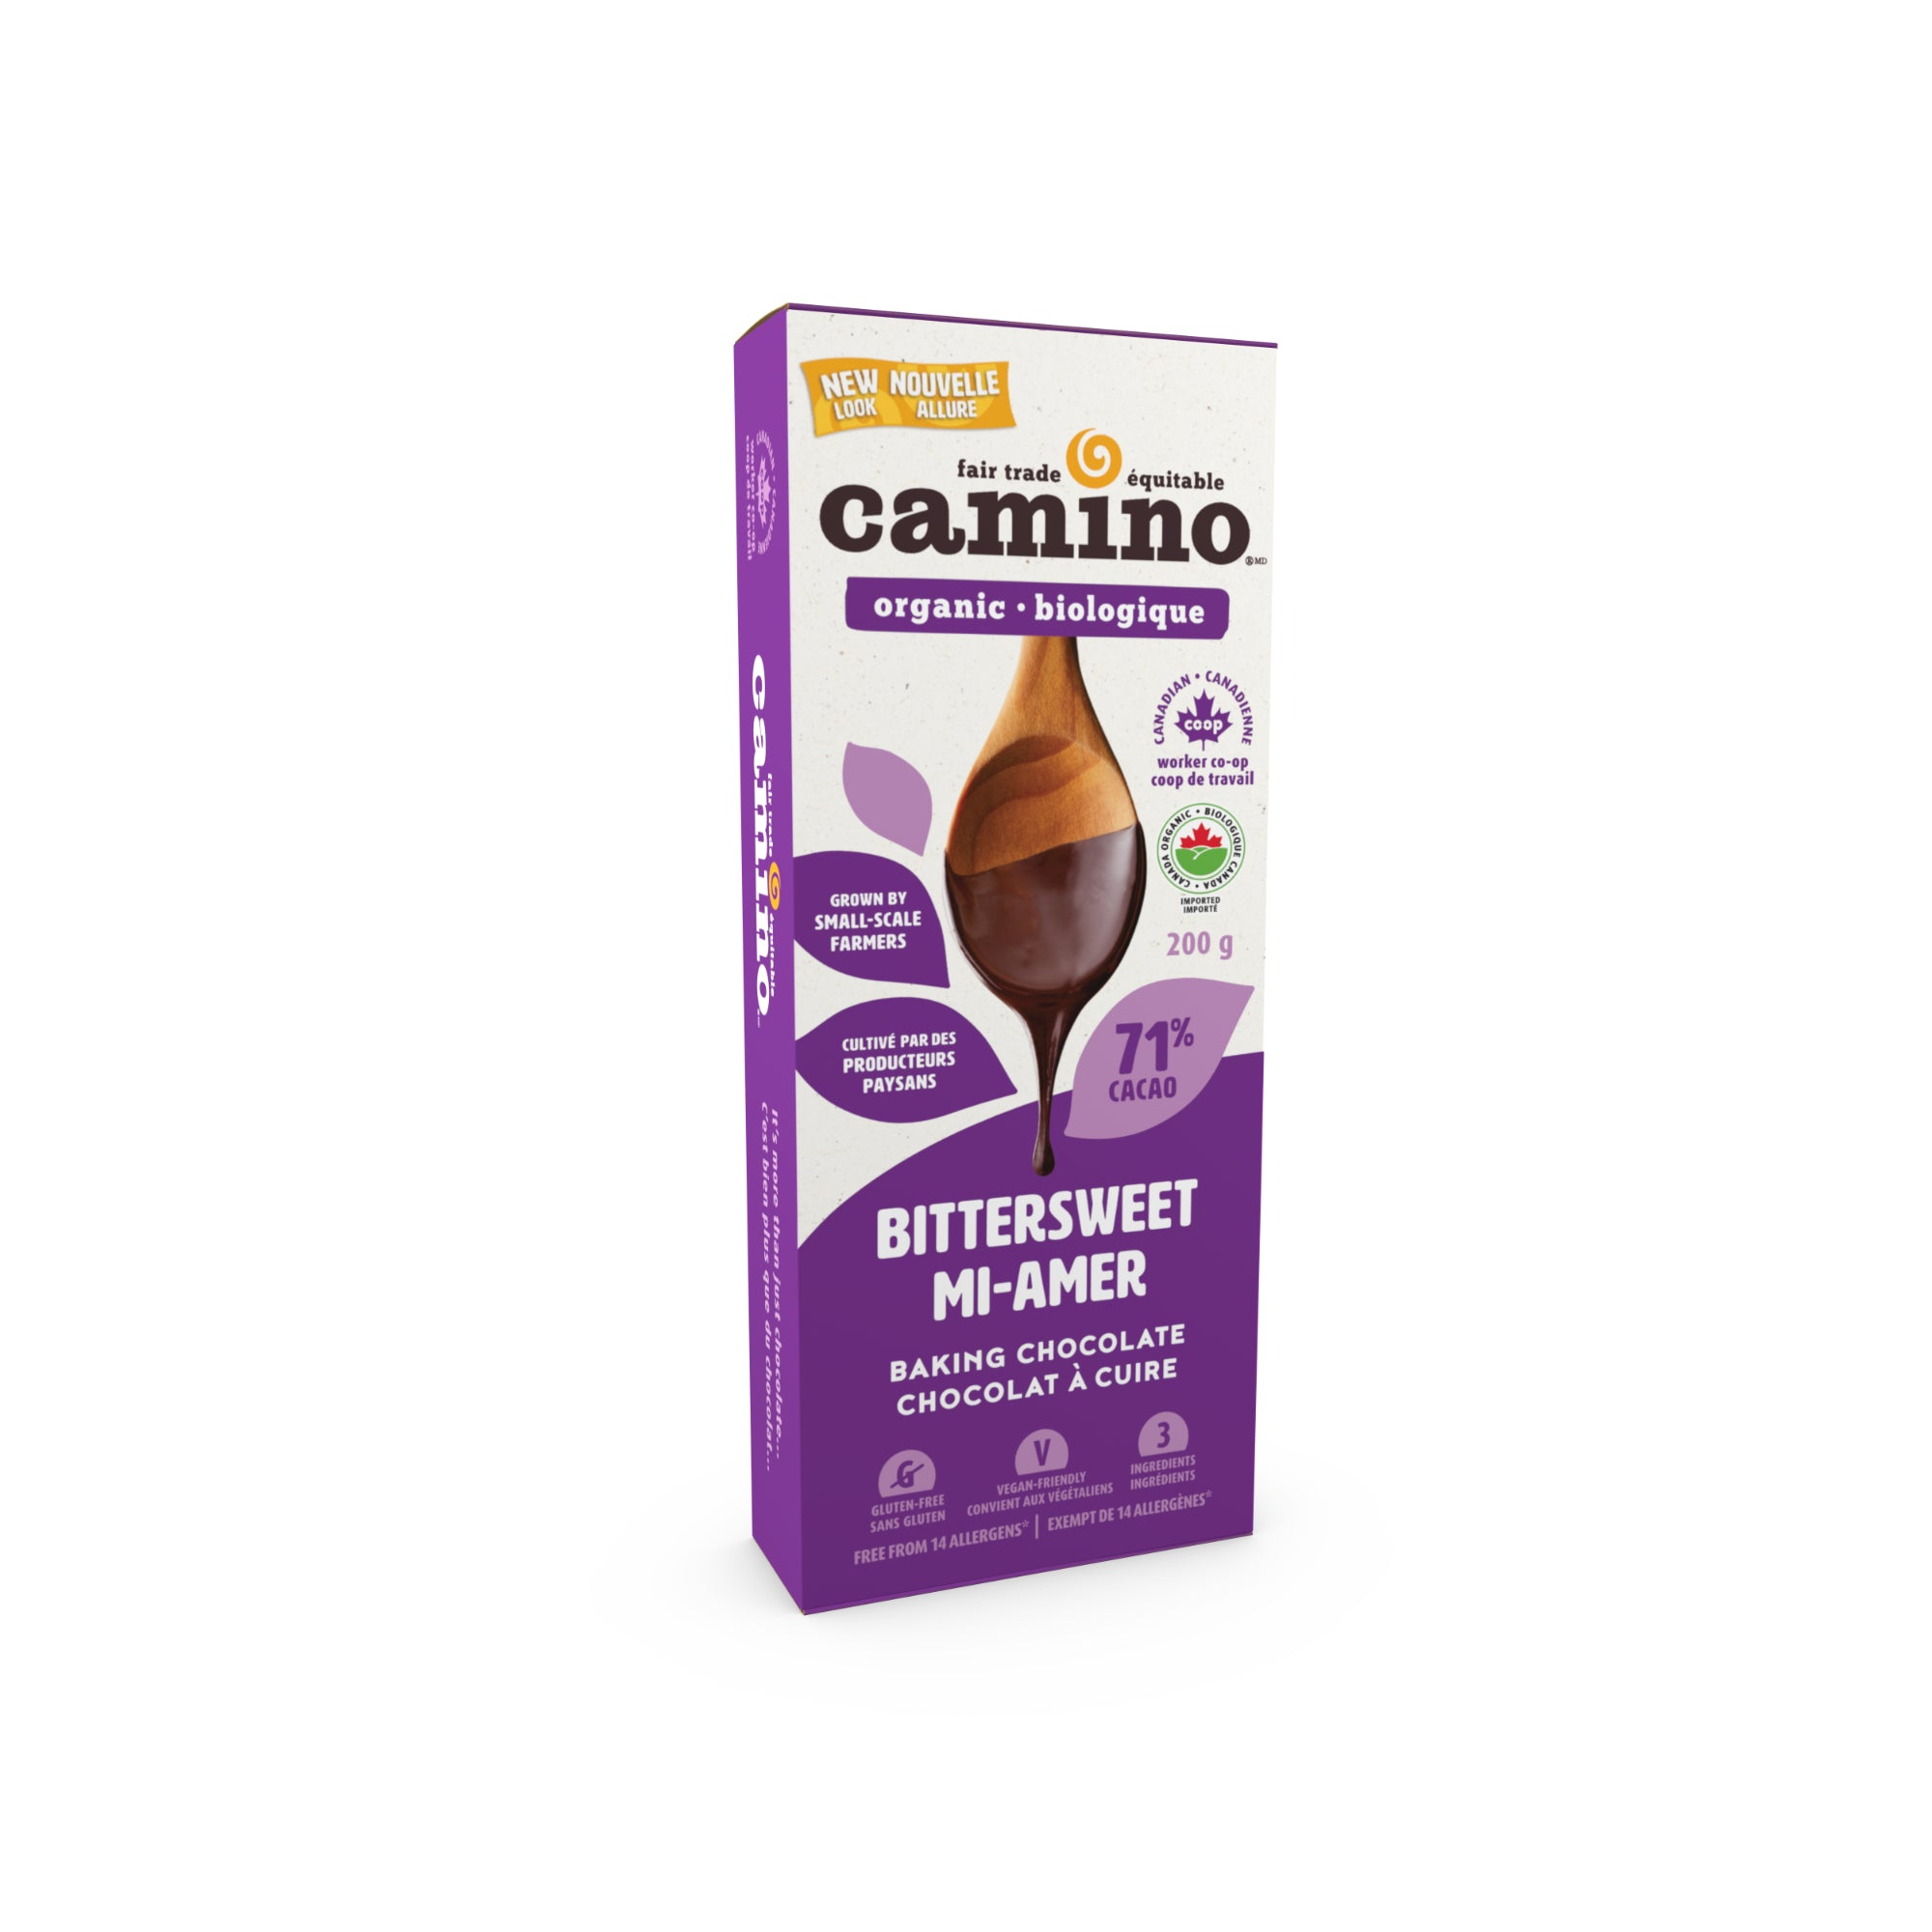 Camino - Baking Chocolate, 71% Bitter Sweet, 200g